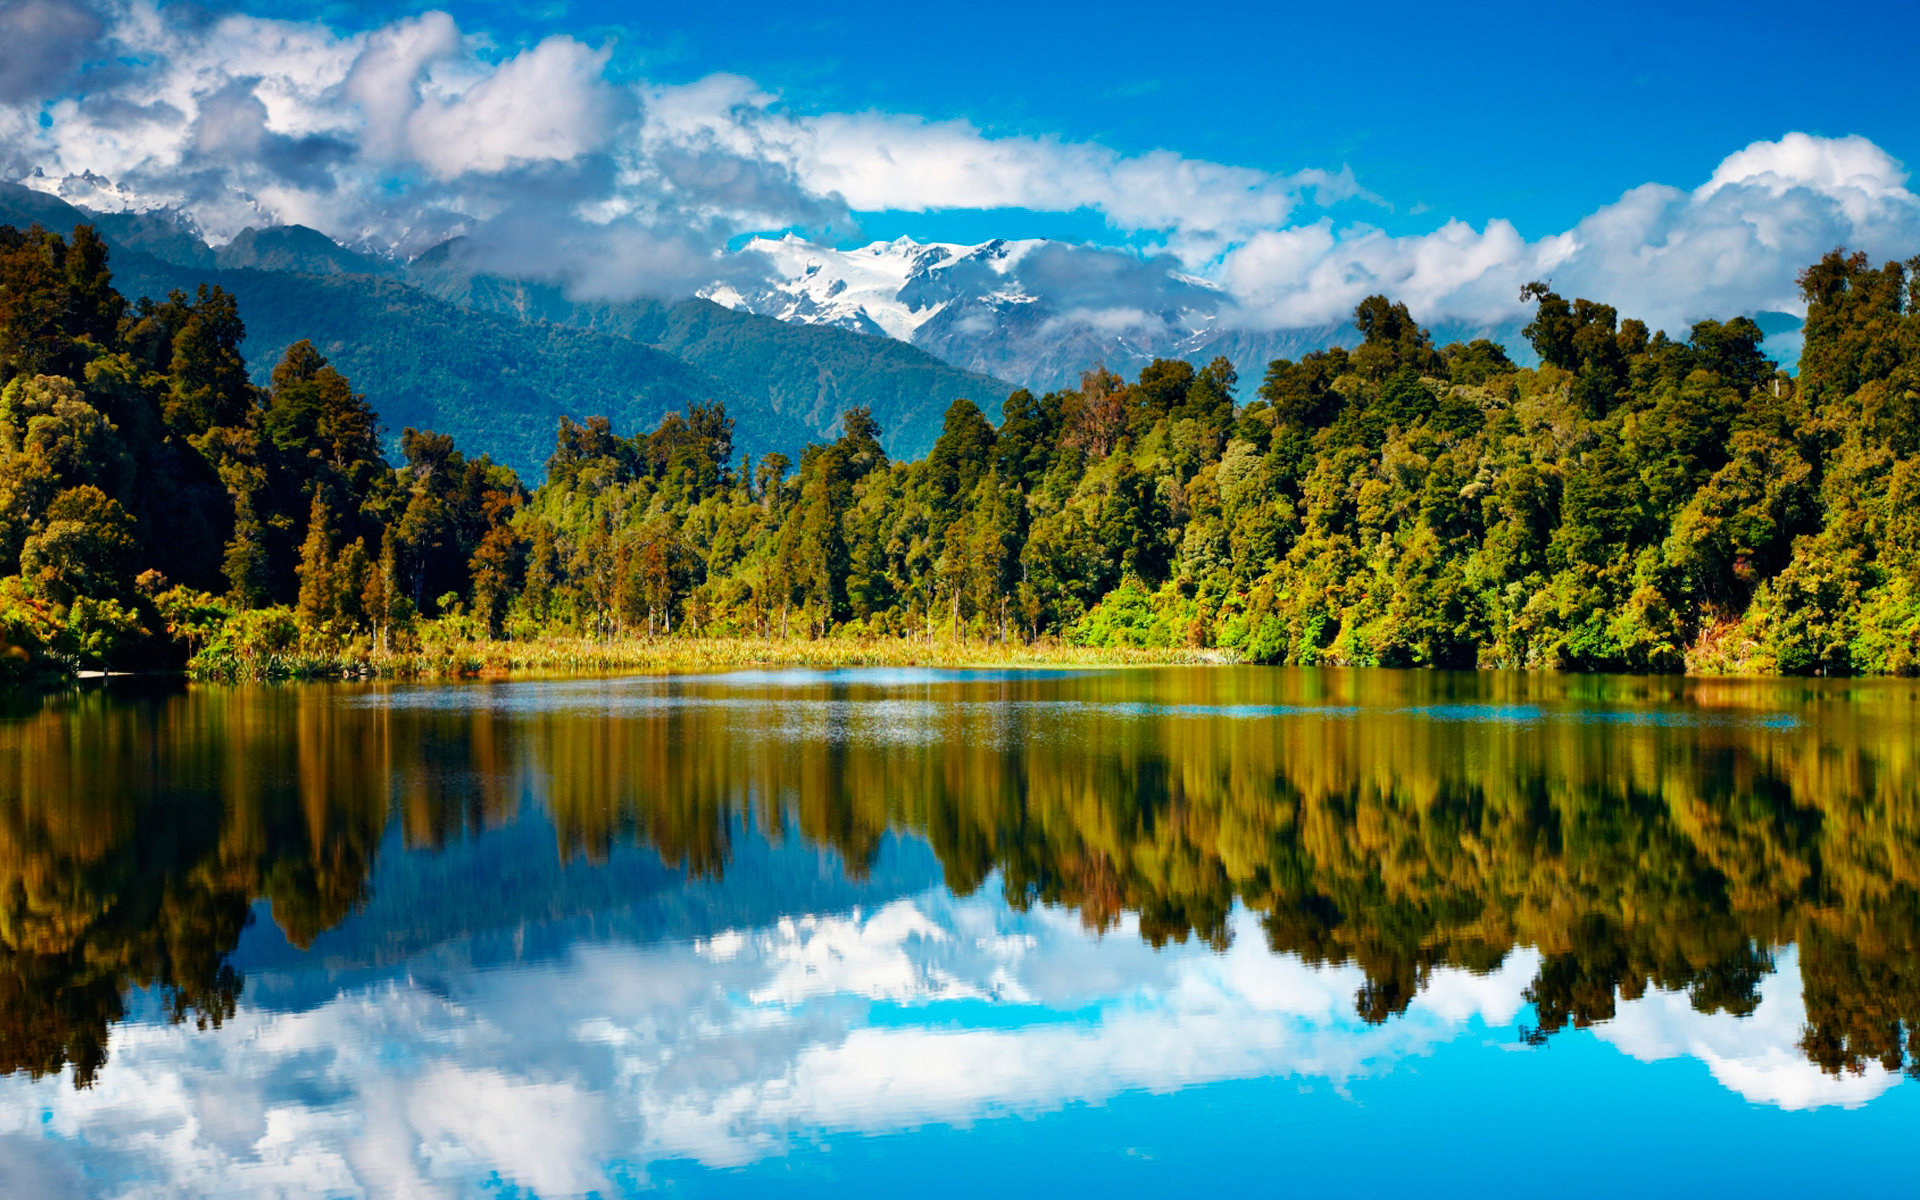 20 Things You Didn't Know About New Zealand